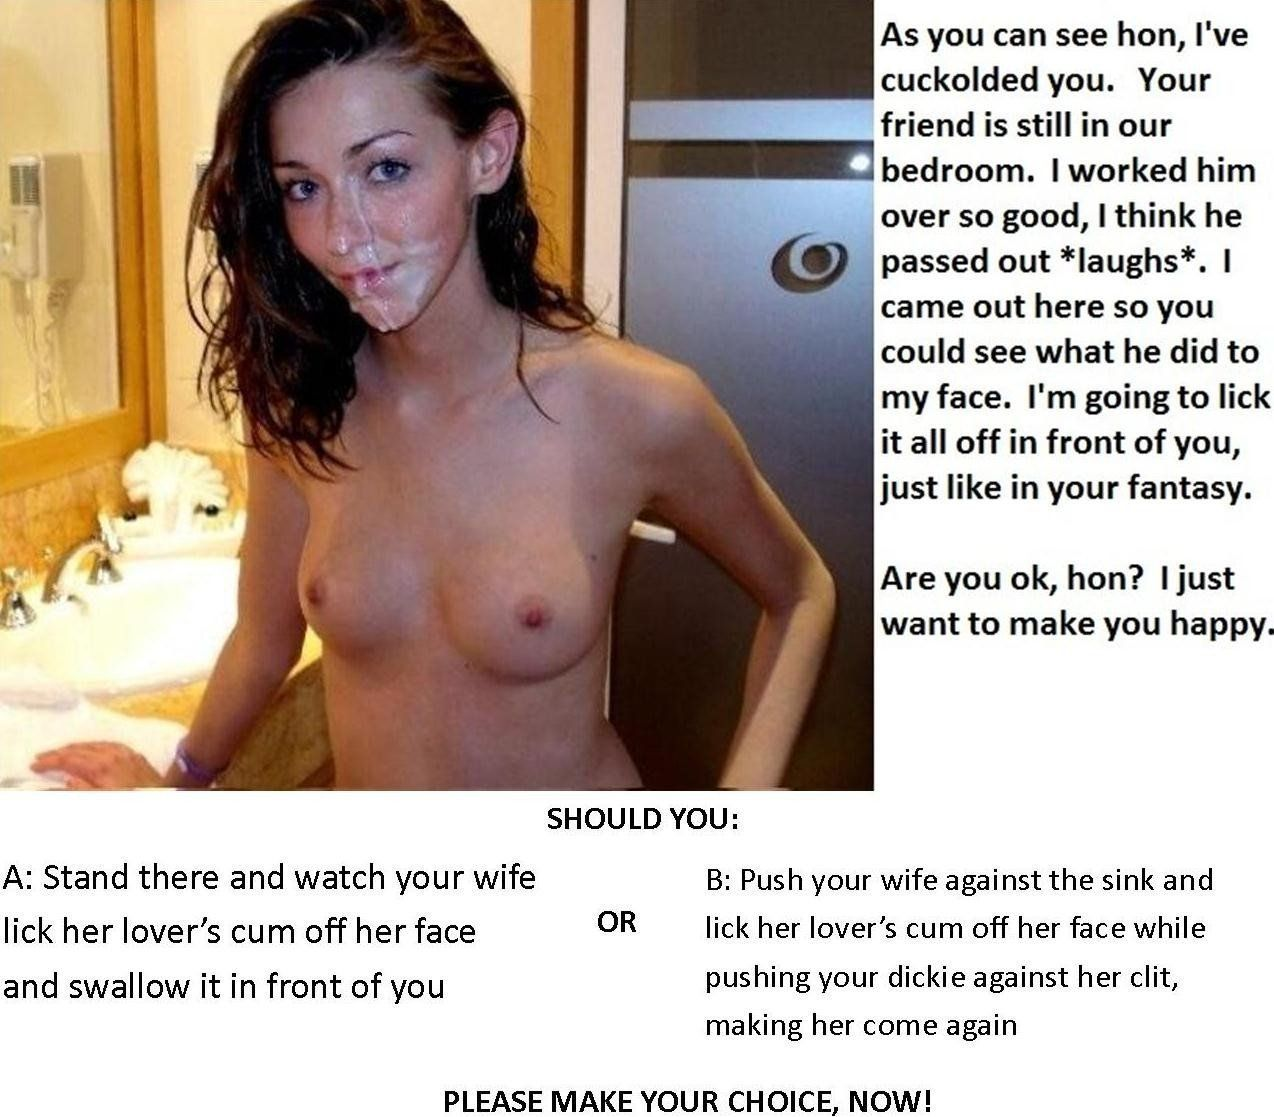 I want to fuck my wife sms